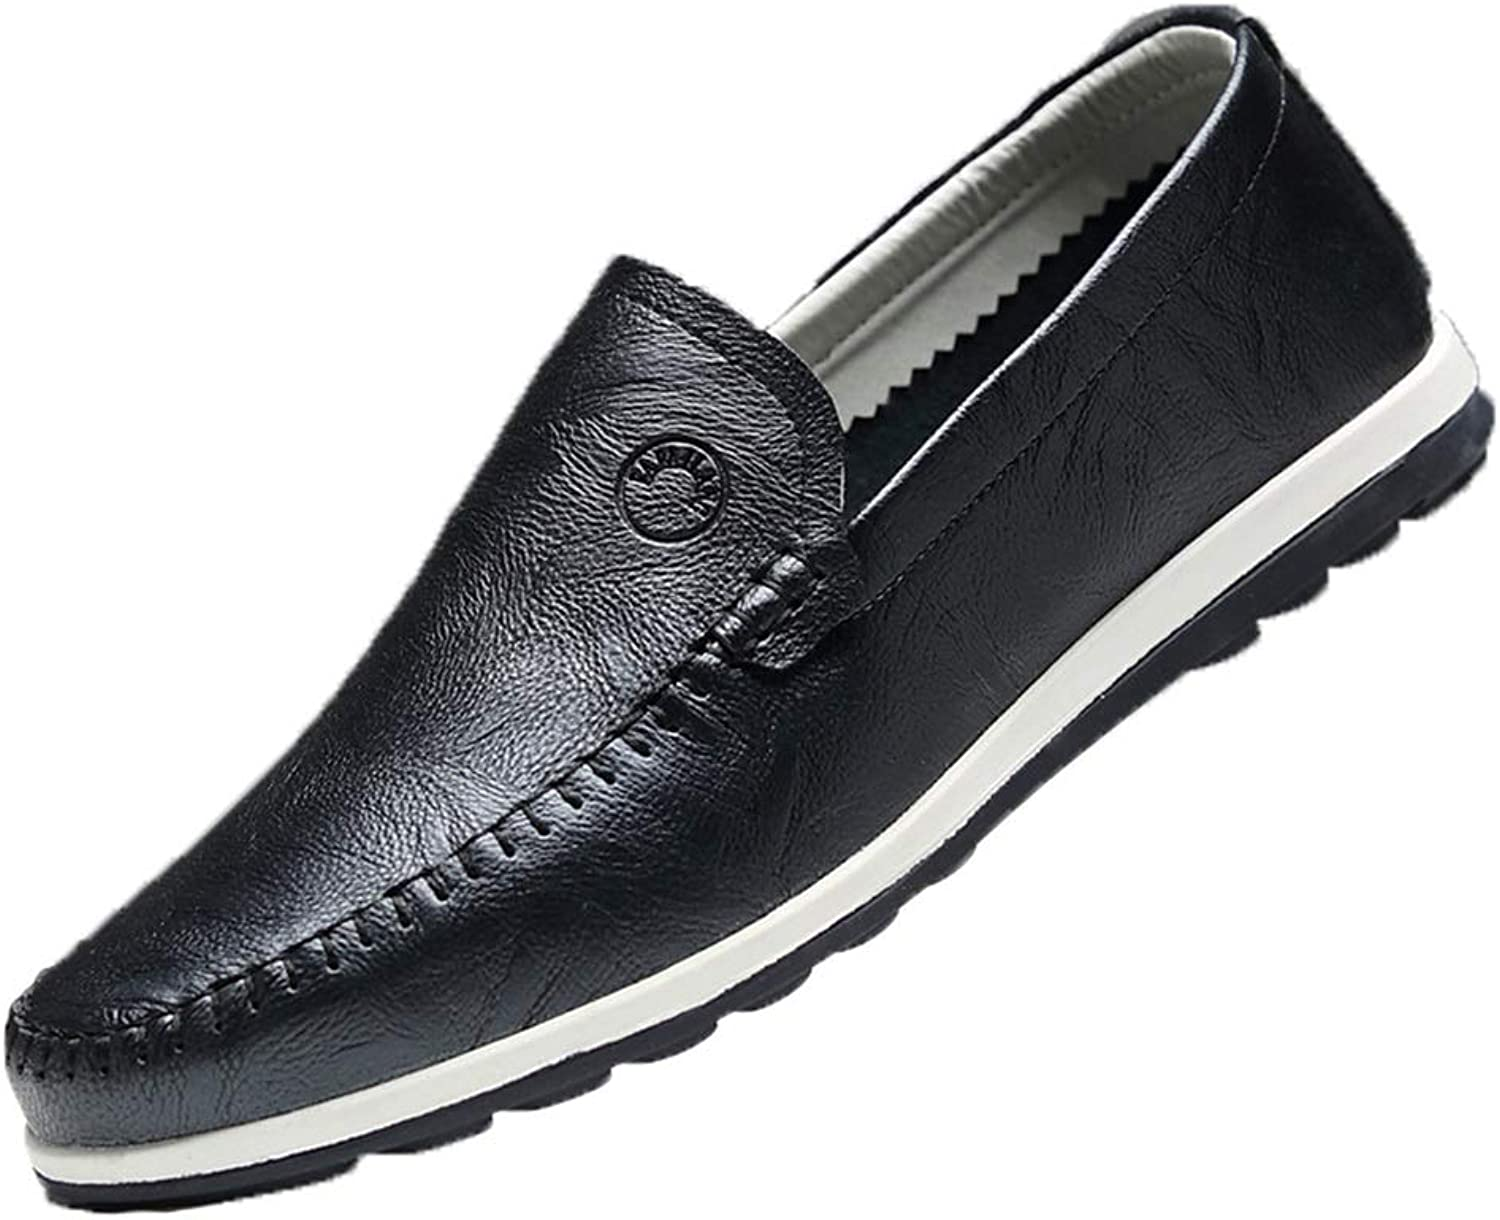 ZHRUI Mens Loafers Sole Casual Breathable Non Slip Genuine Leather Driving shoes (color   Black, Size   UK 5.5)